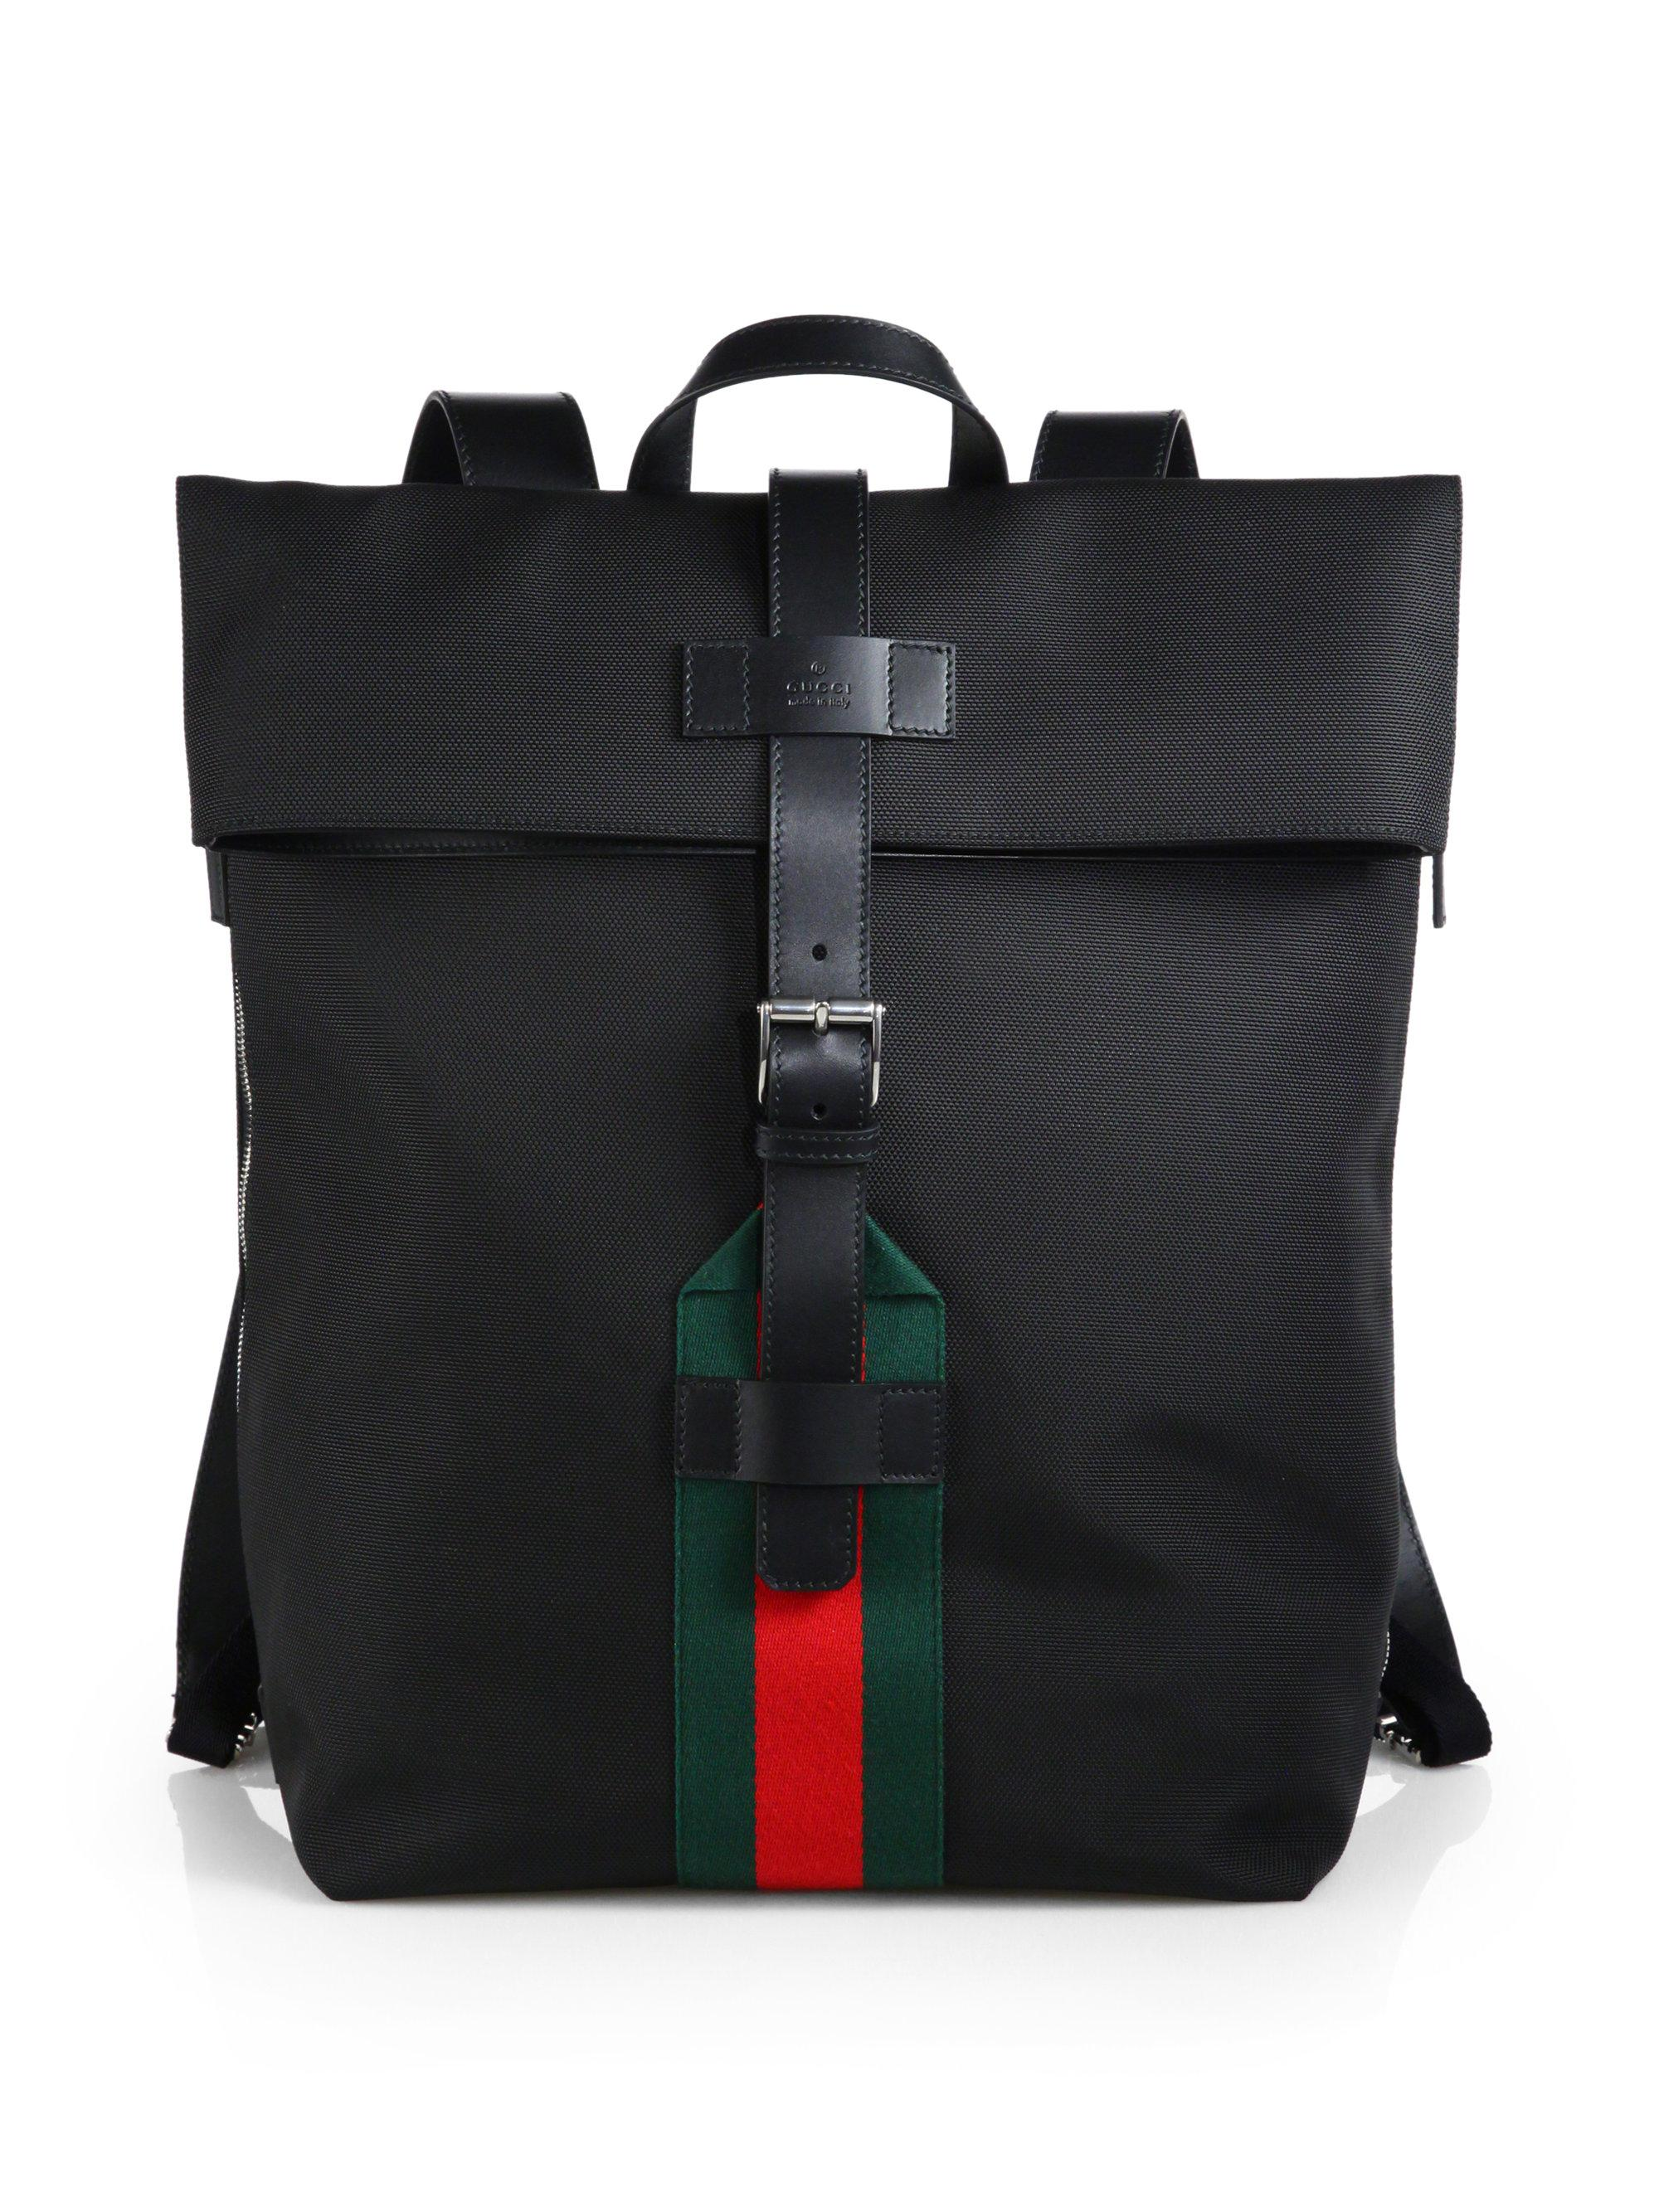 1c41504ad Gucci Techno Canvas Backpack in Black for Men - Lyst